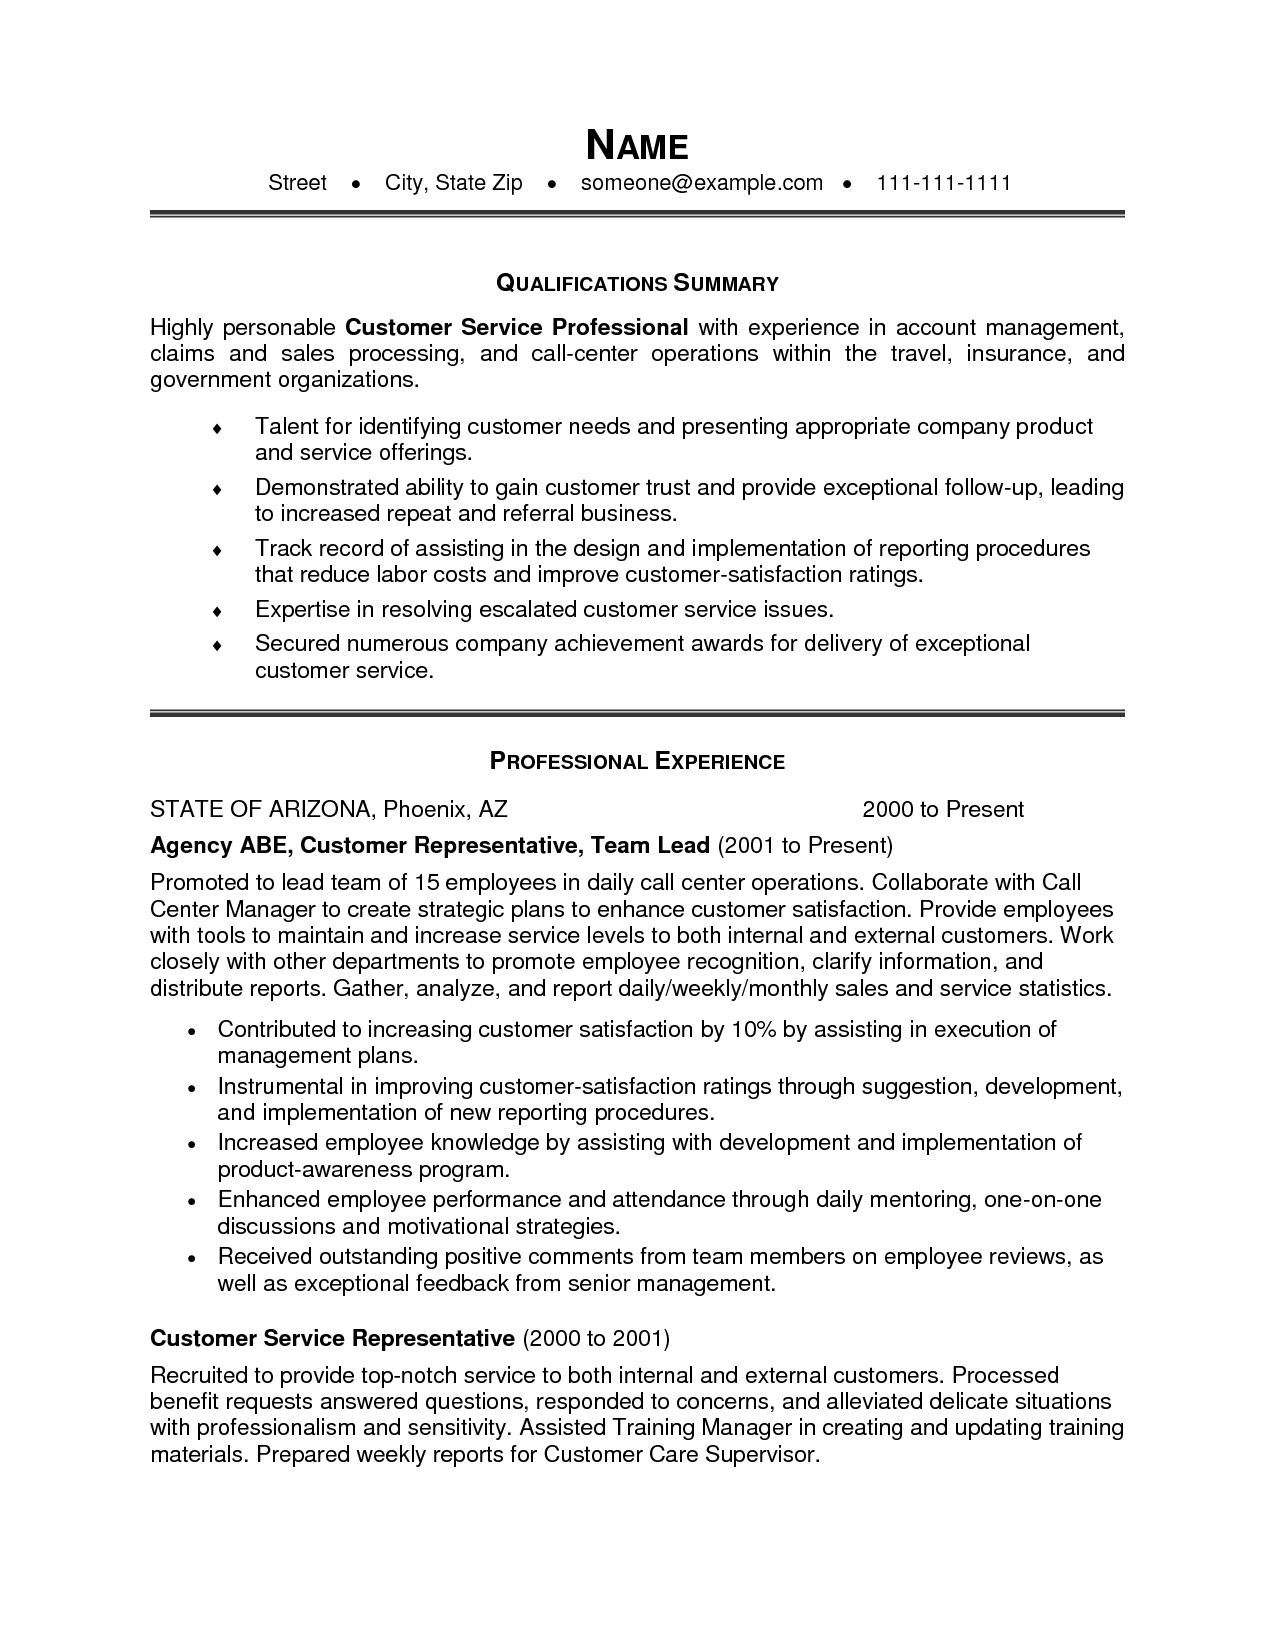 Customer Service Resume Summary Examples Resume Summary Examples Customer  Service 18ba541c5 Photo